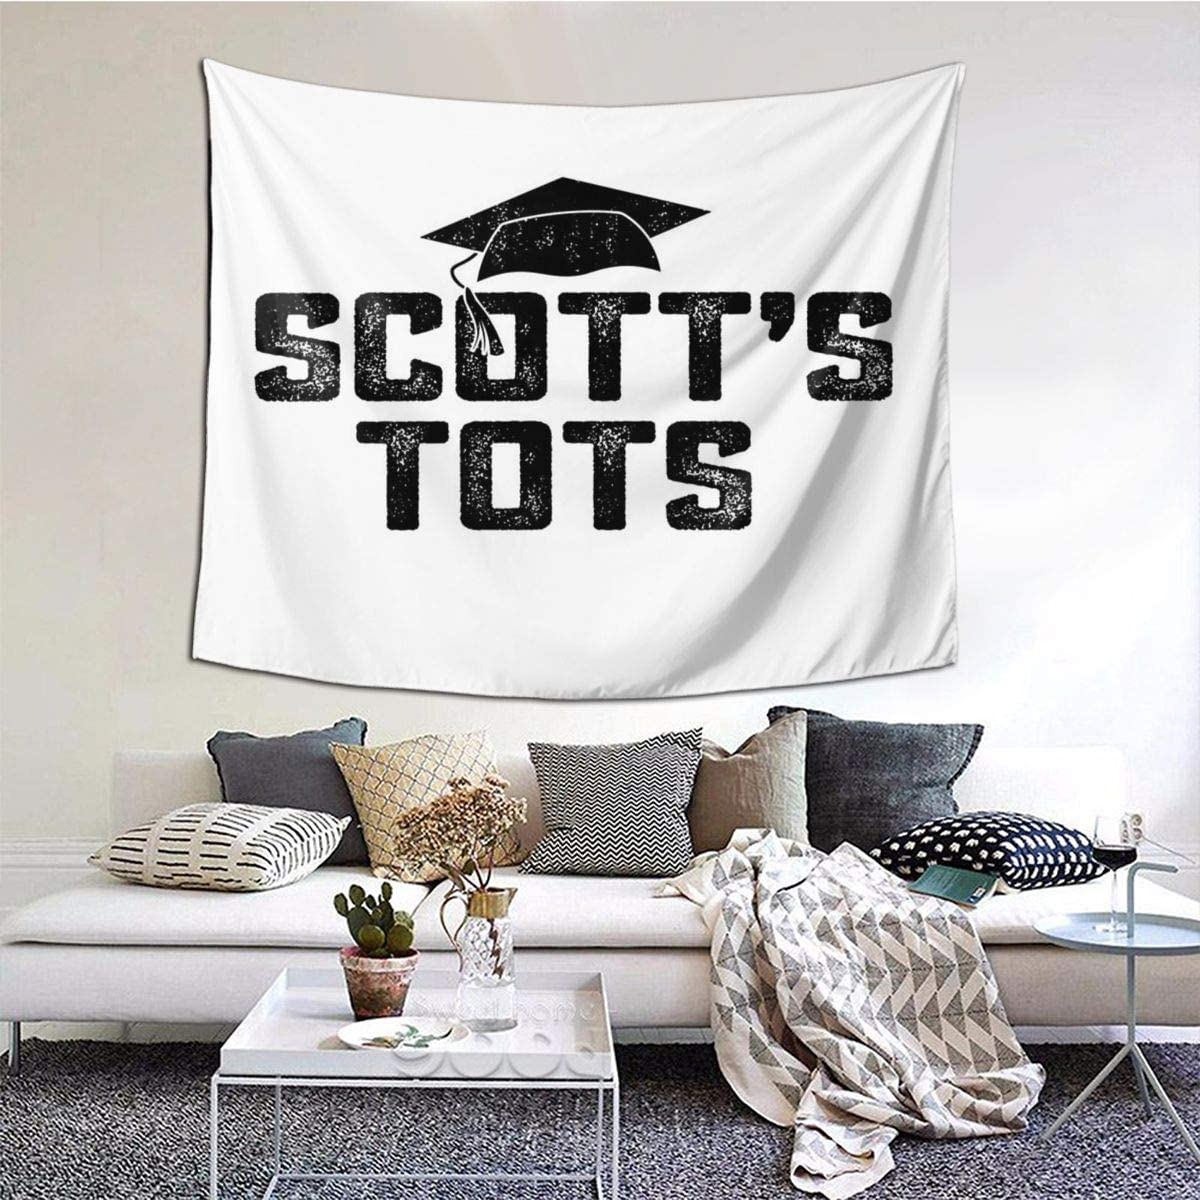 Scotts Tots Michael Scott The Office NBC Tv Show Funny Gift Living Room Home Art Decor Tapestry Bedroom Dorm Wall Hanging 60 X 51 Inch